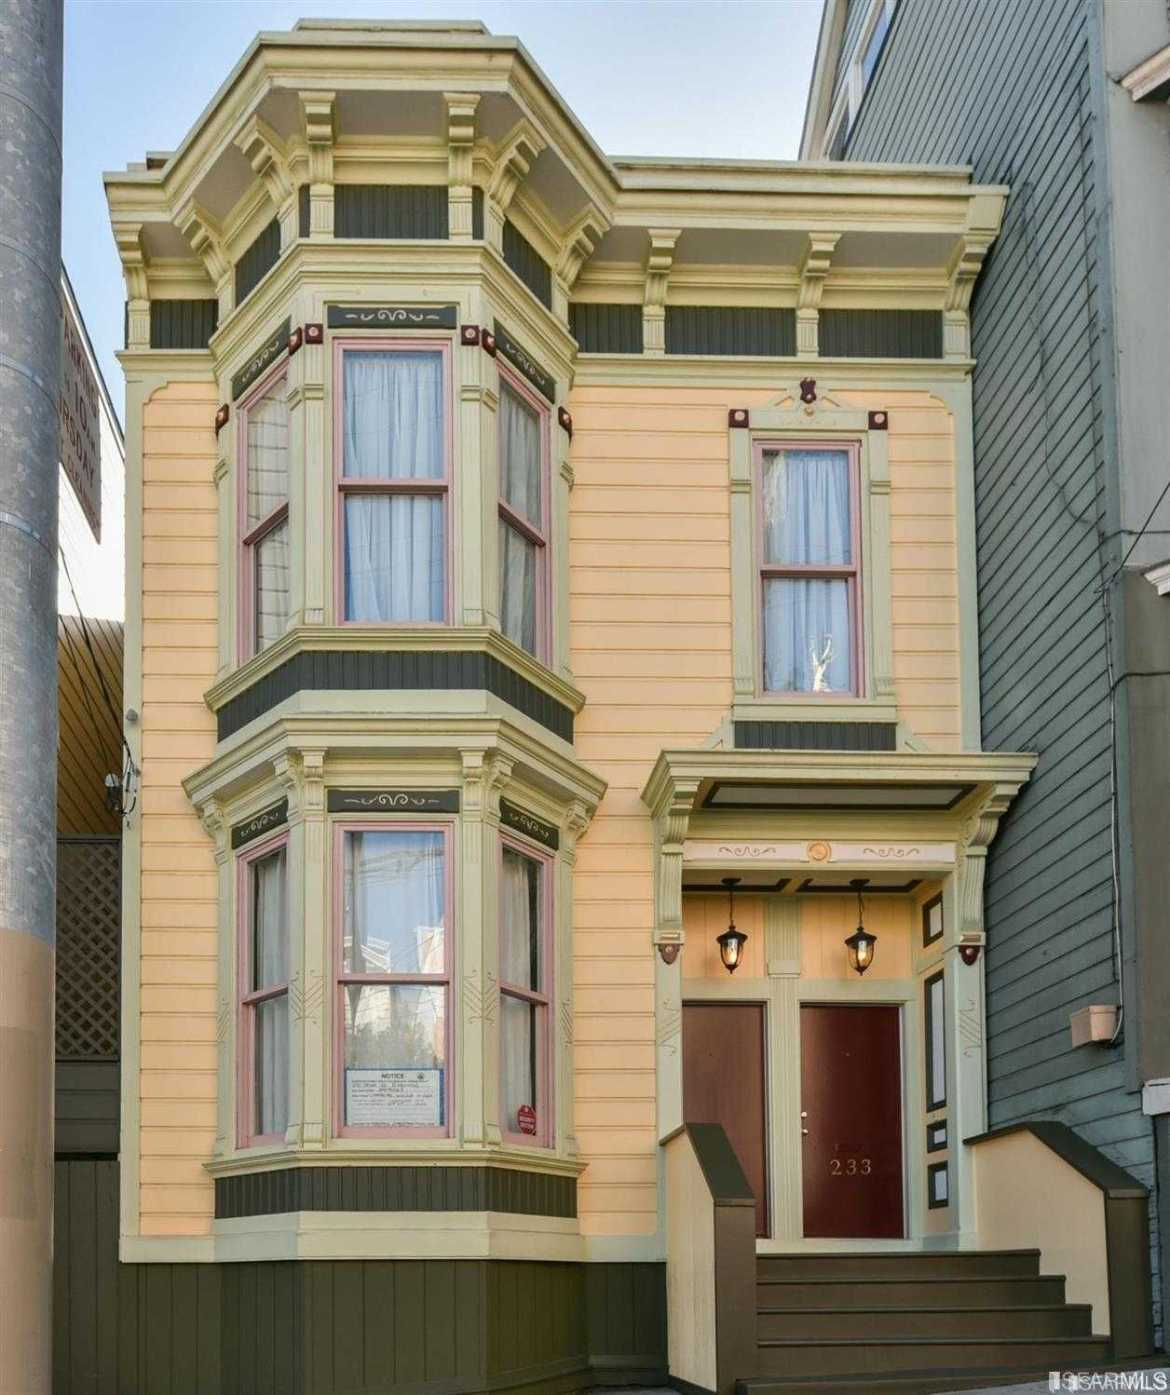 $1,245,000 - 2Br/1Ba -  for Sale in San Francisco